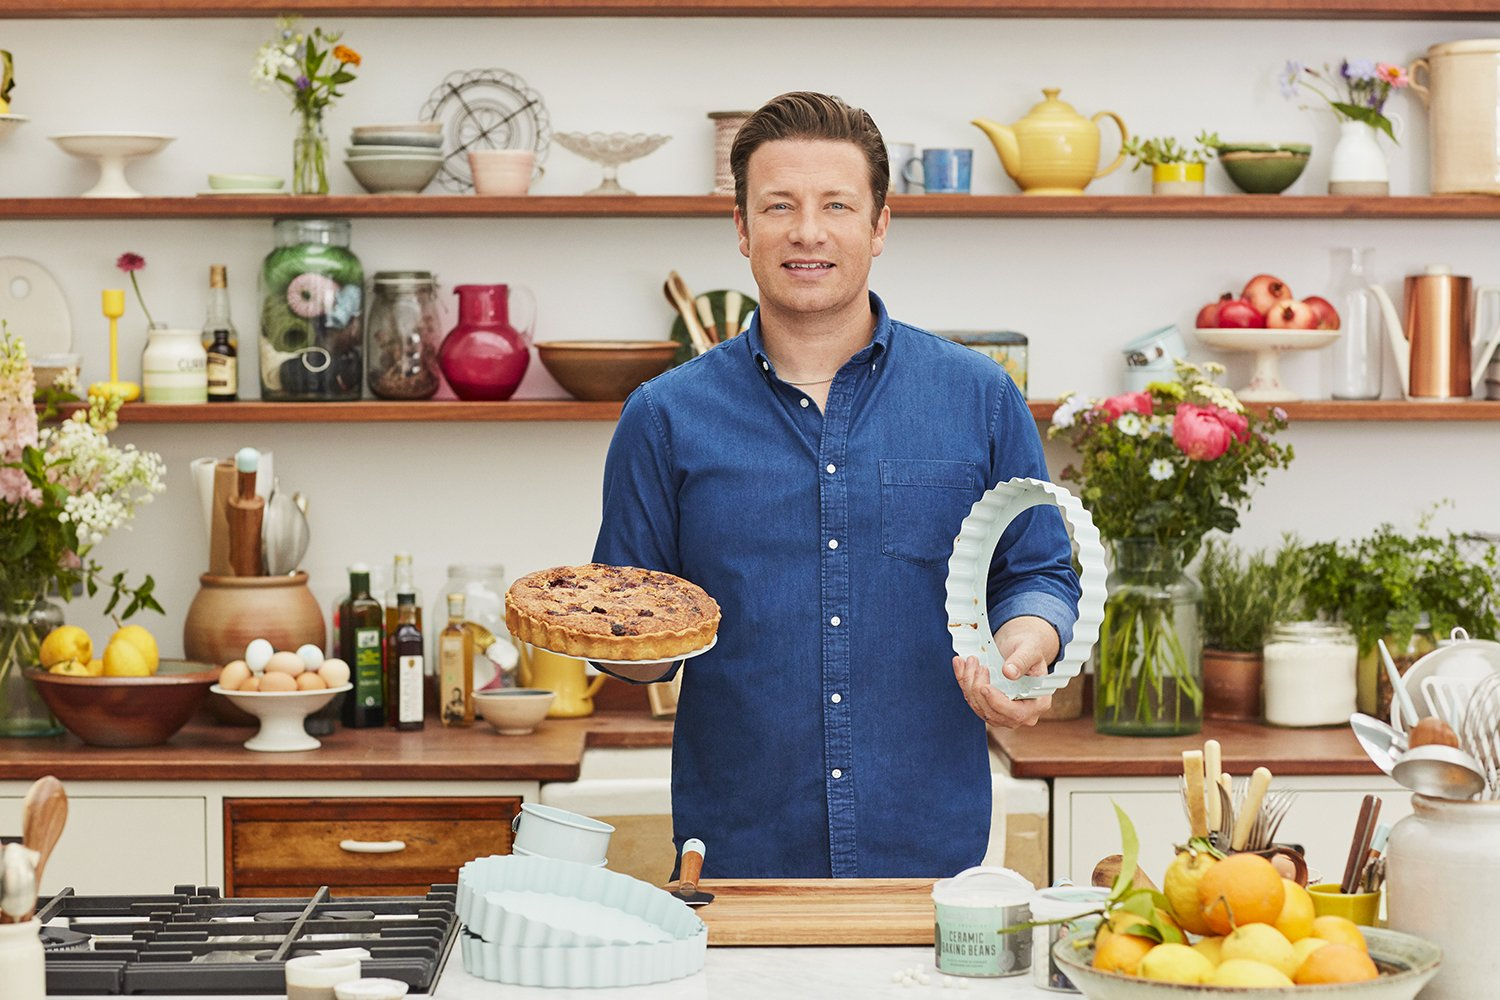 JAMIE OLIVER Tart Pie Tin, 10 Inches, Nonstick by Jamie Oliver (Image #5)